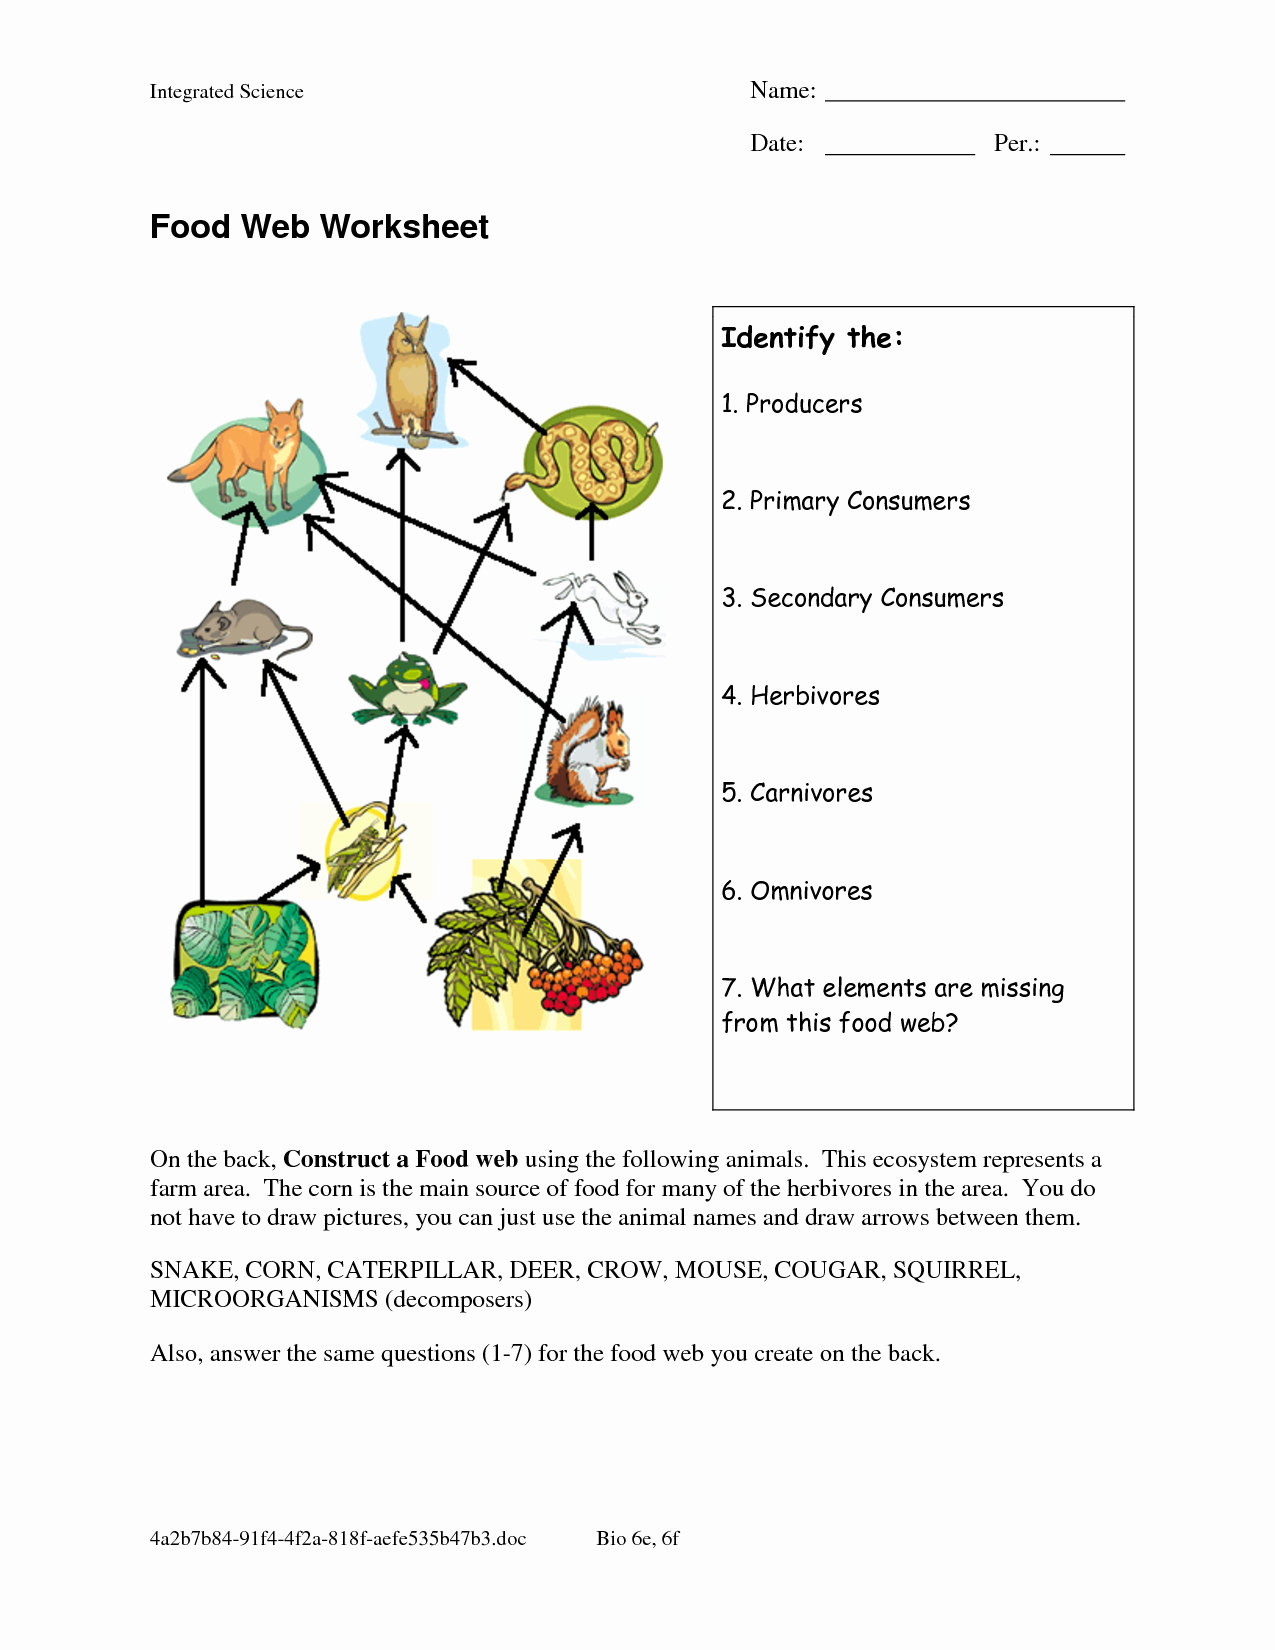 Food Chain Worksheet Answers Inspirational Food Web Worksheets